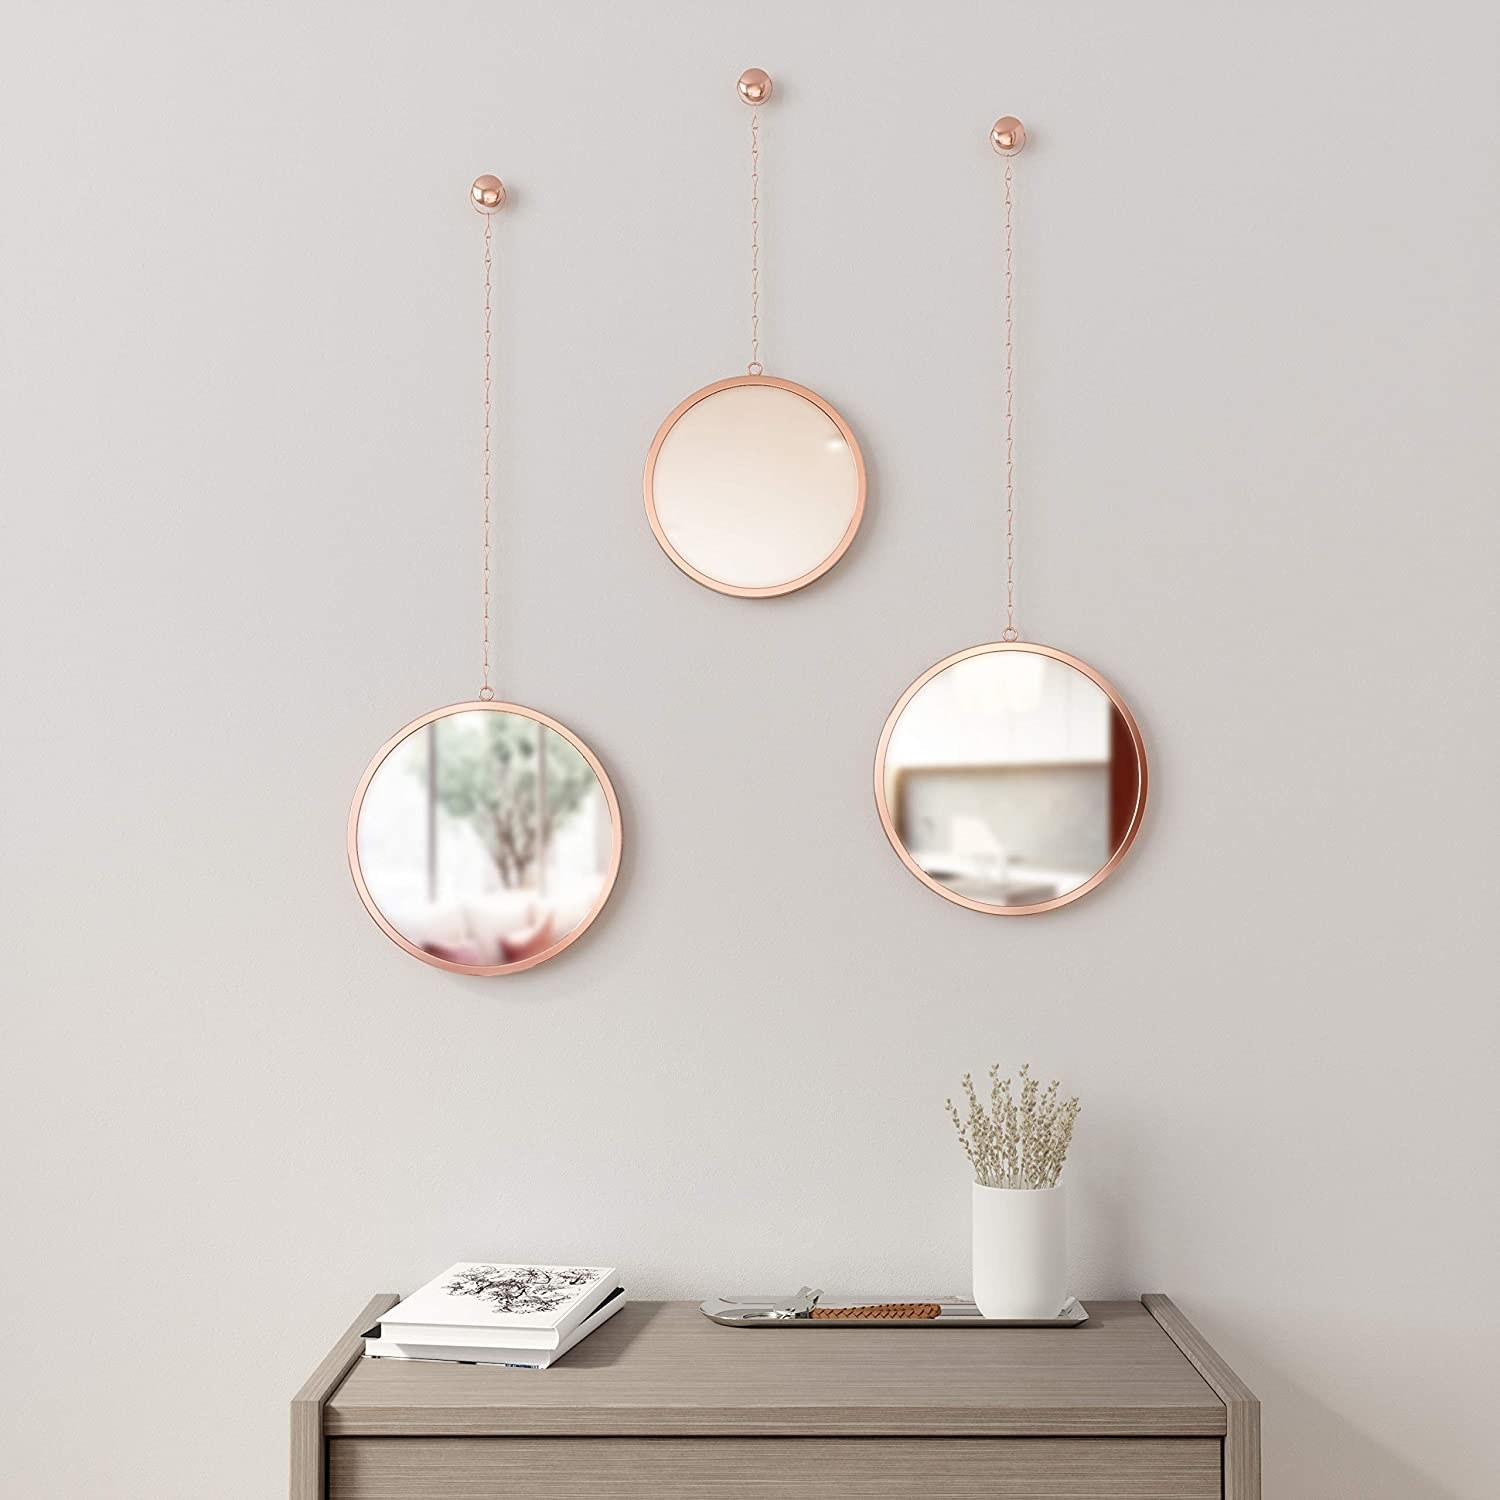 Three round framed mirrors hanging on a wall